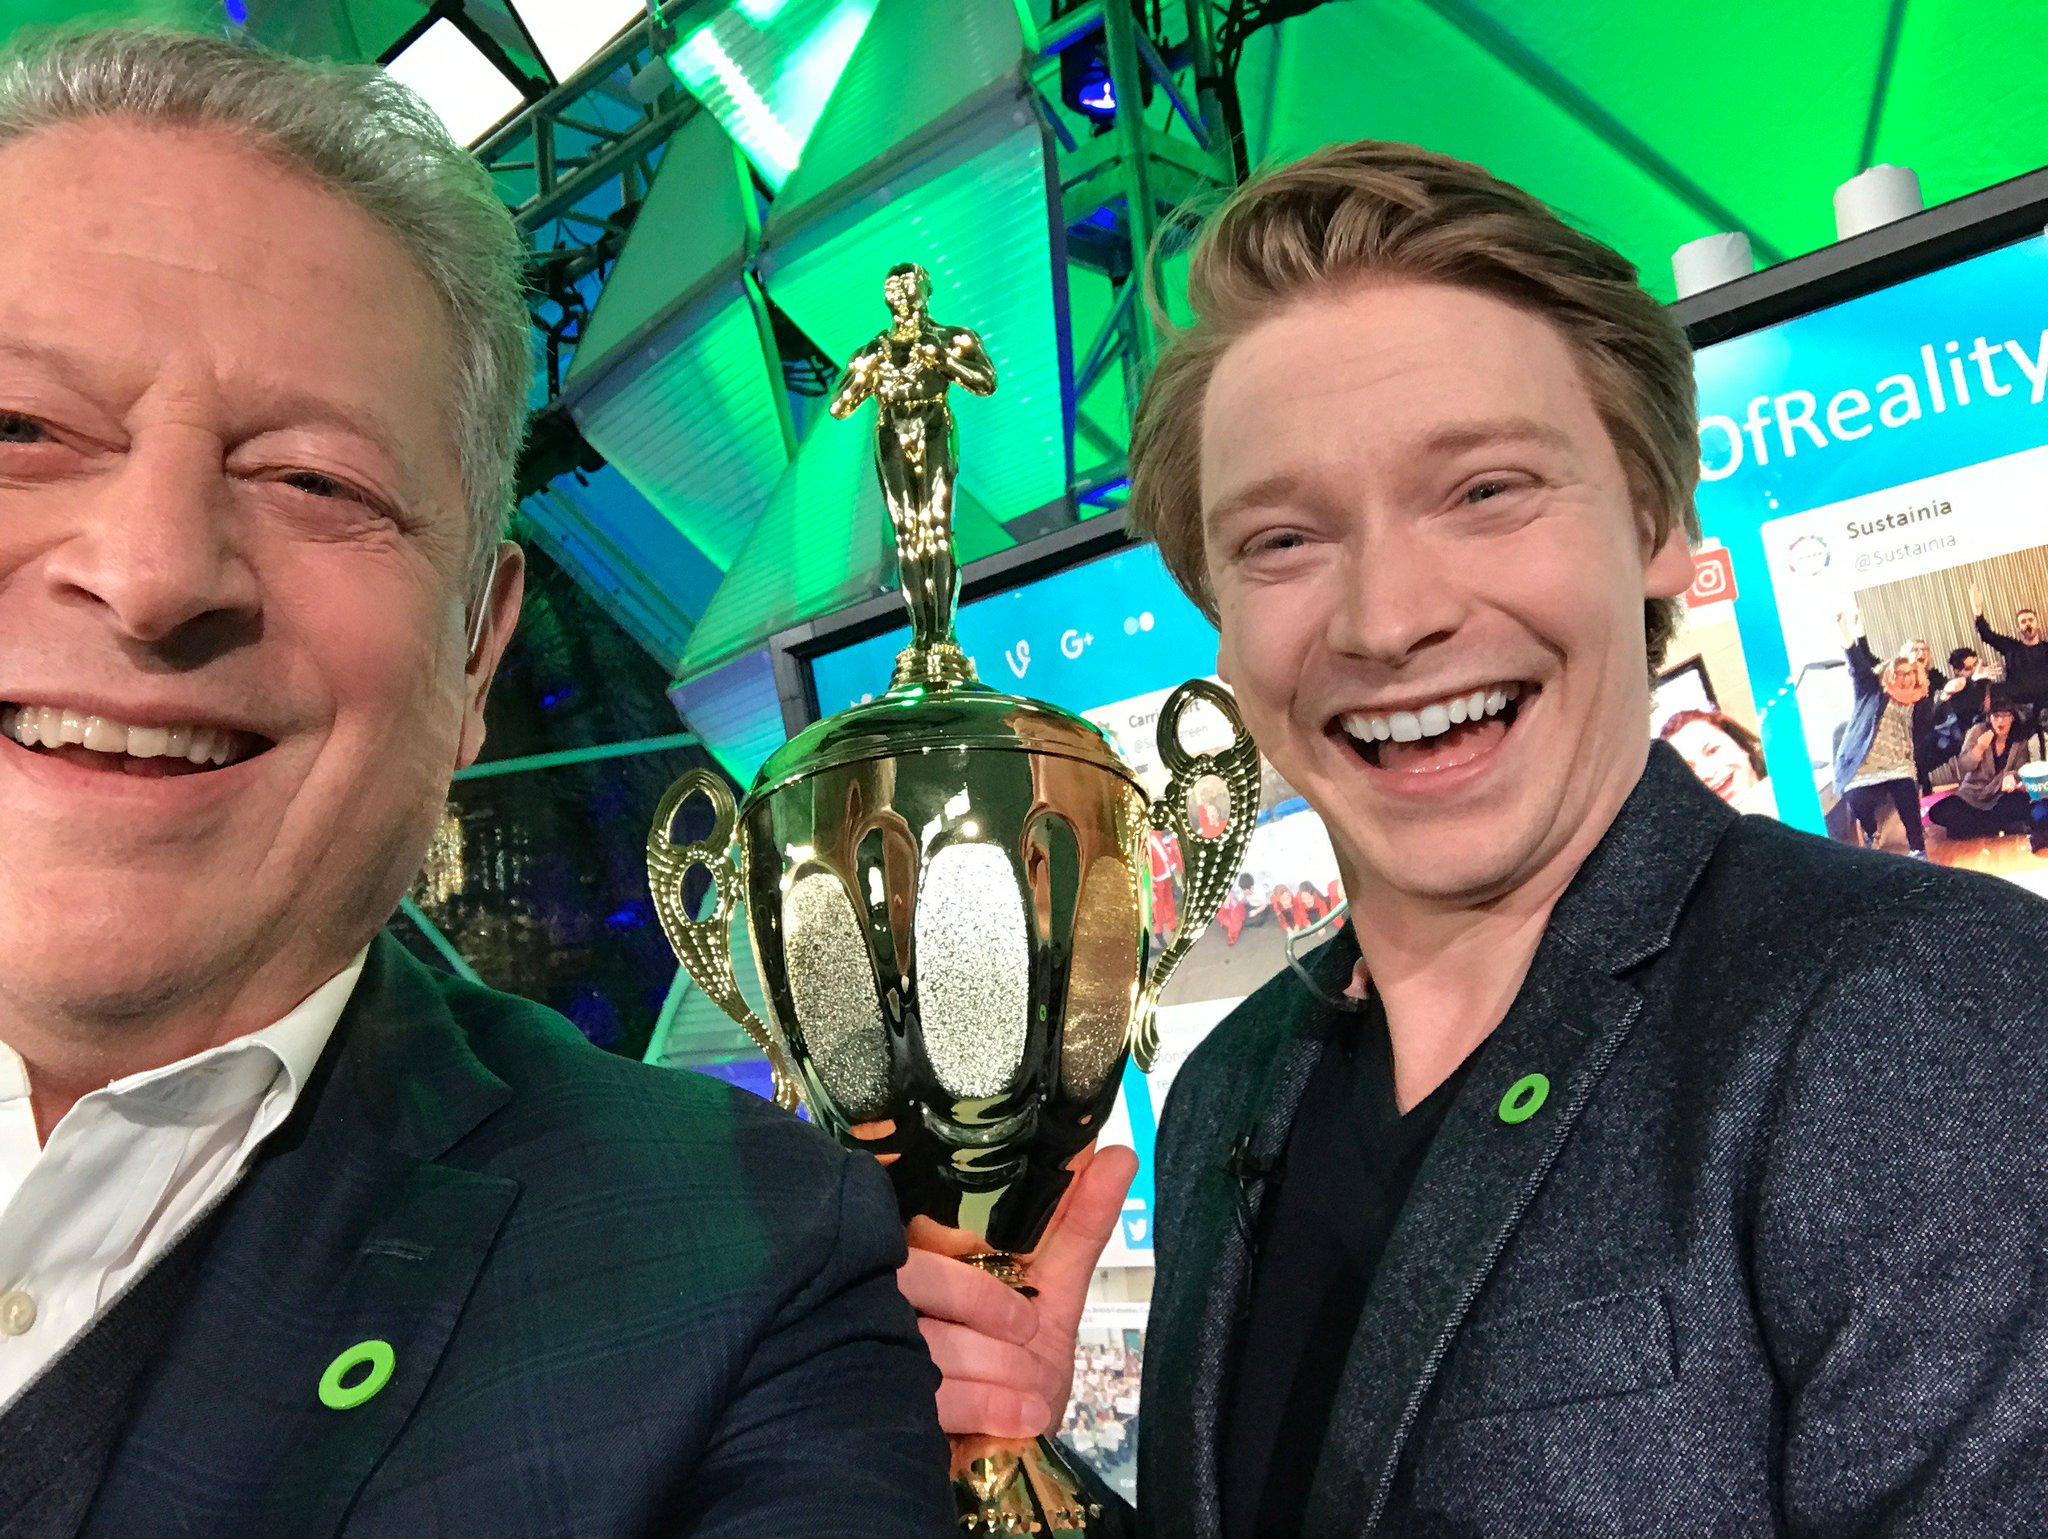 Thanks, @CalumWorthy, for joining us at #24HoursOfReality and being an excellent climate leader! https://t.co/aqey8oWSyj